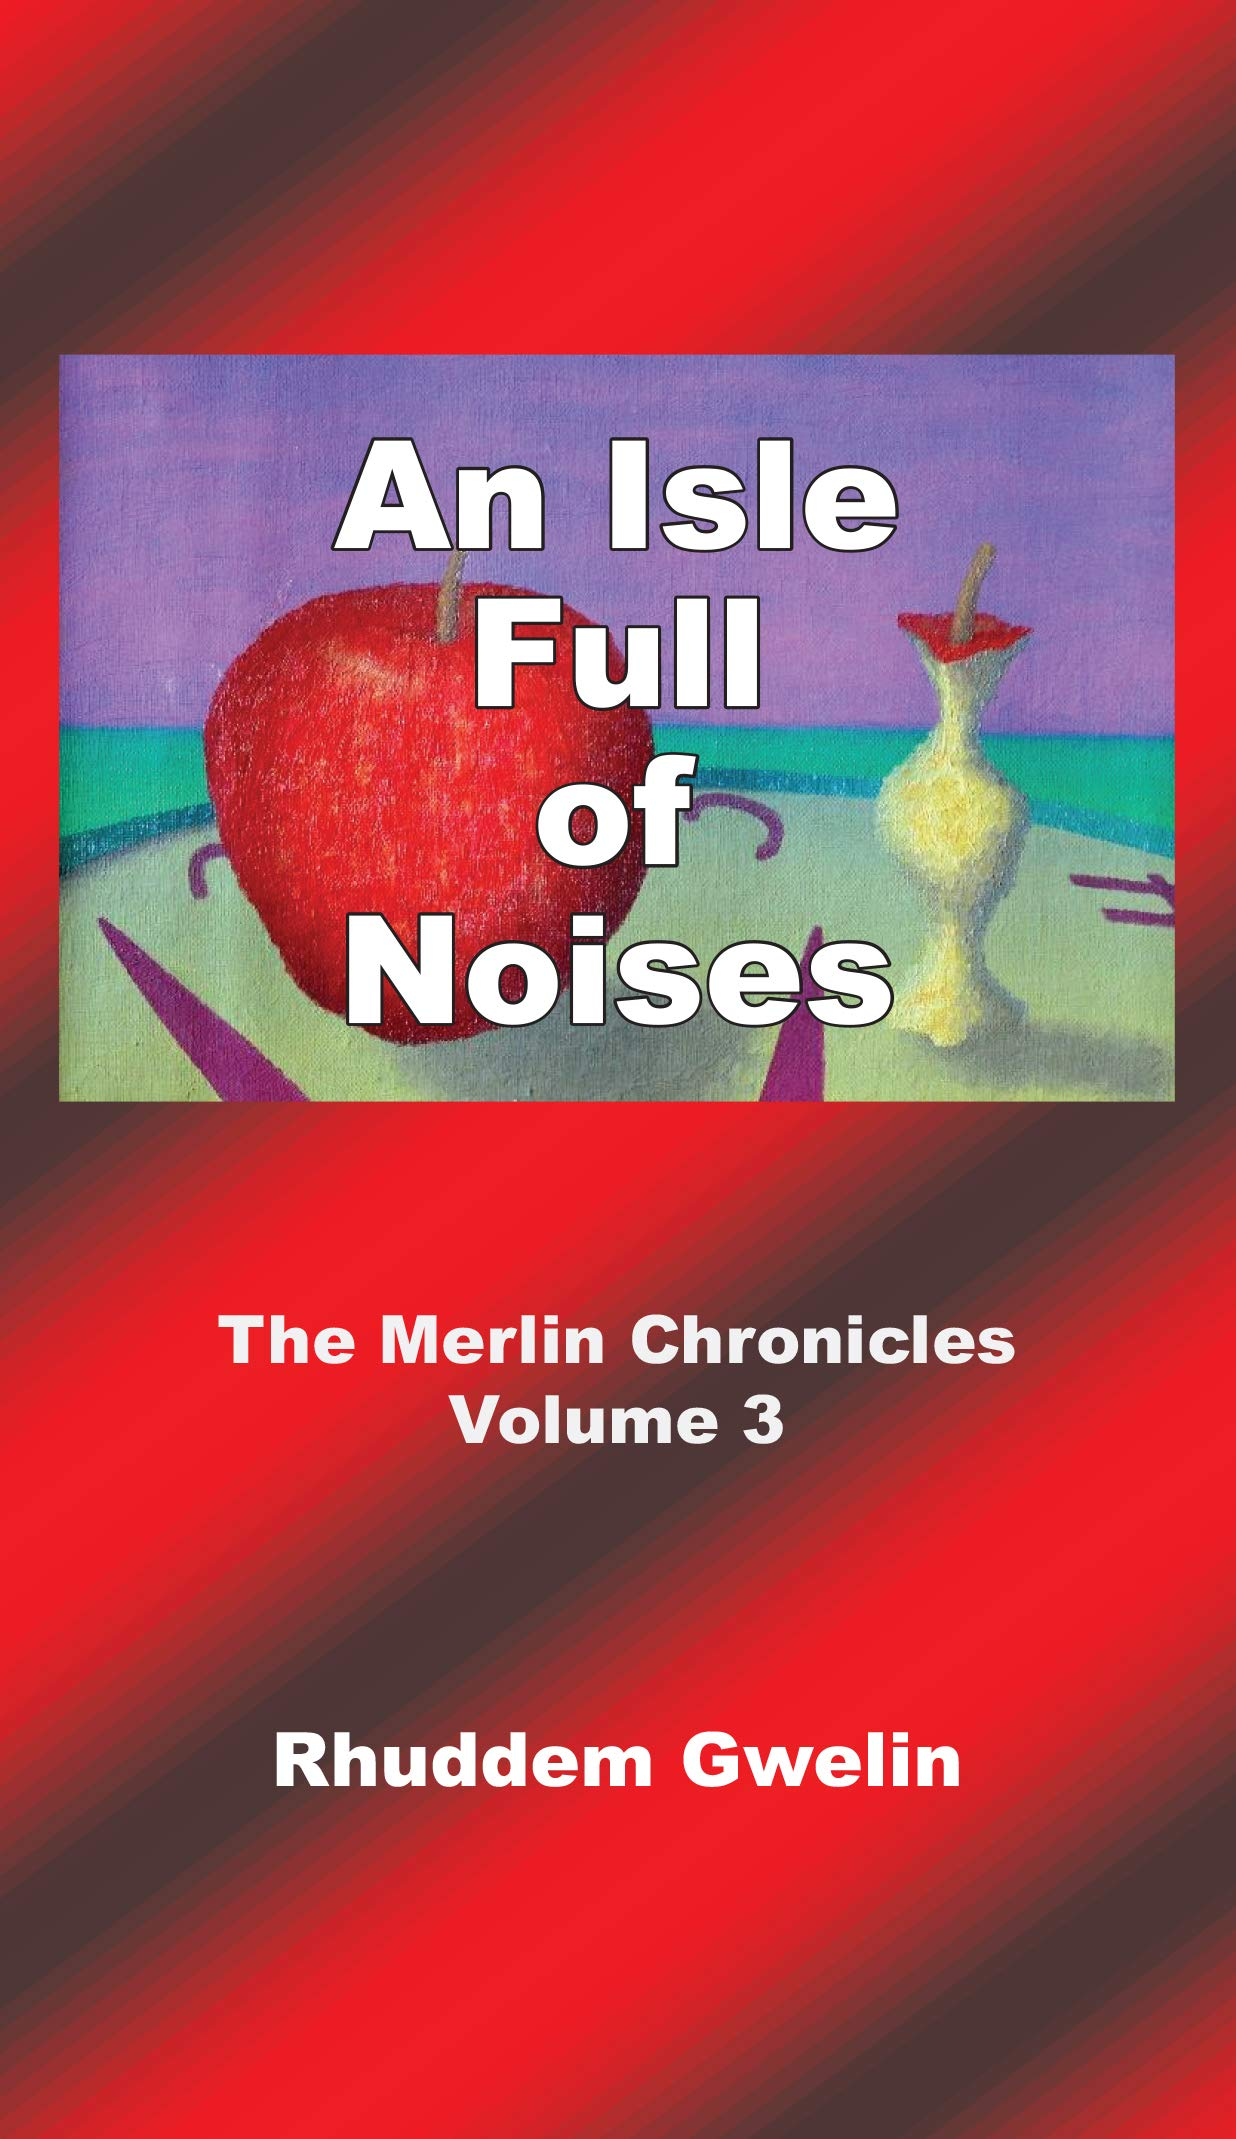 Image result for an isle full of noises gwelin